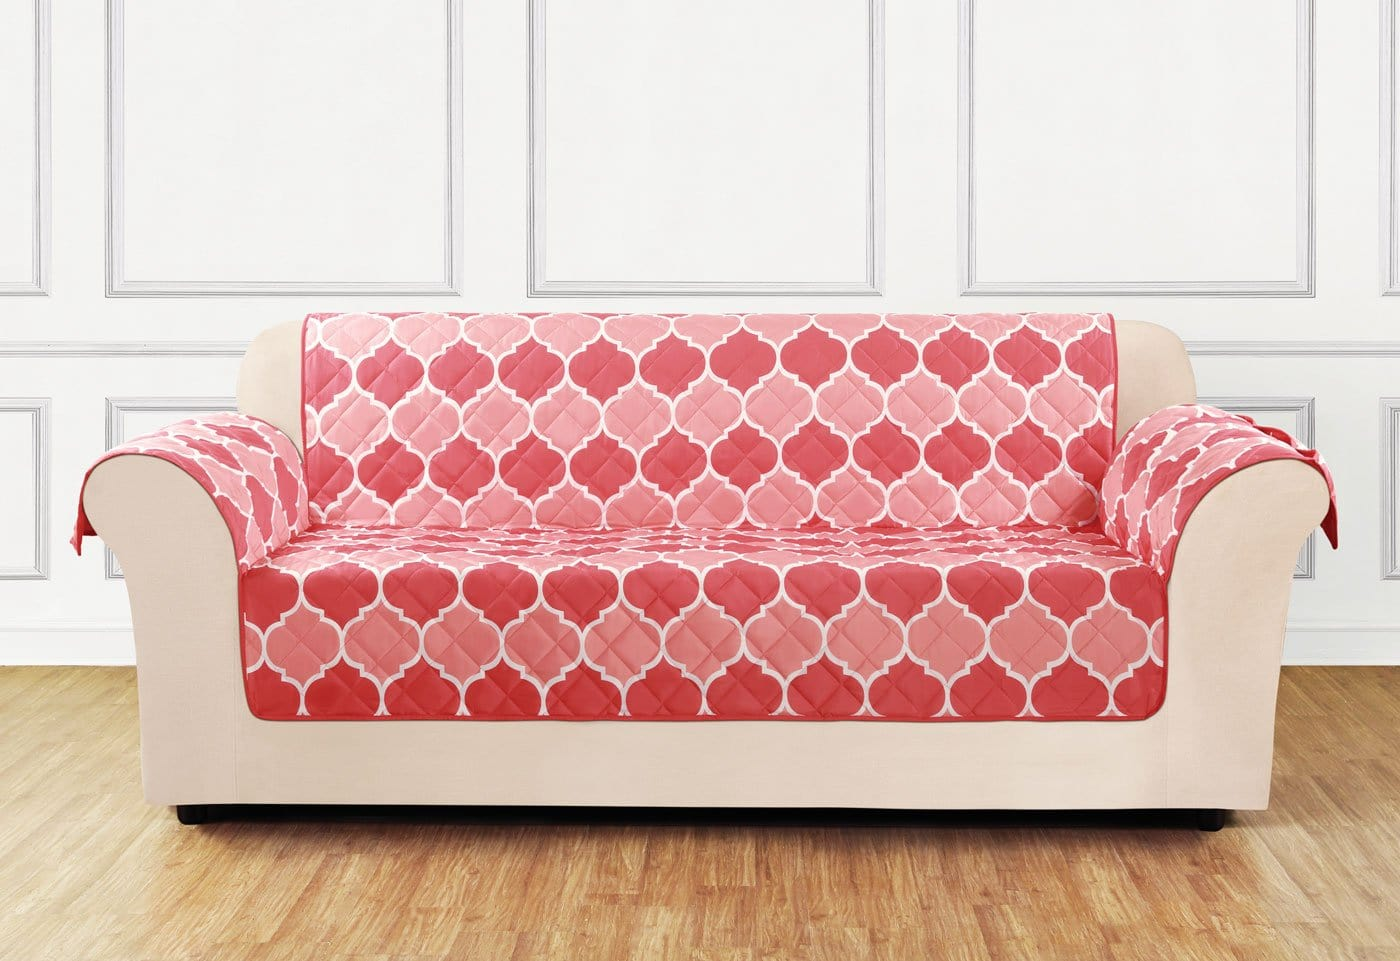 Furniture Flair Sofa Furniture Cover 100% Polyester Pet Furniture Cover Machine Washable - Sofa / Coral